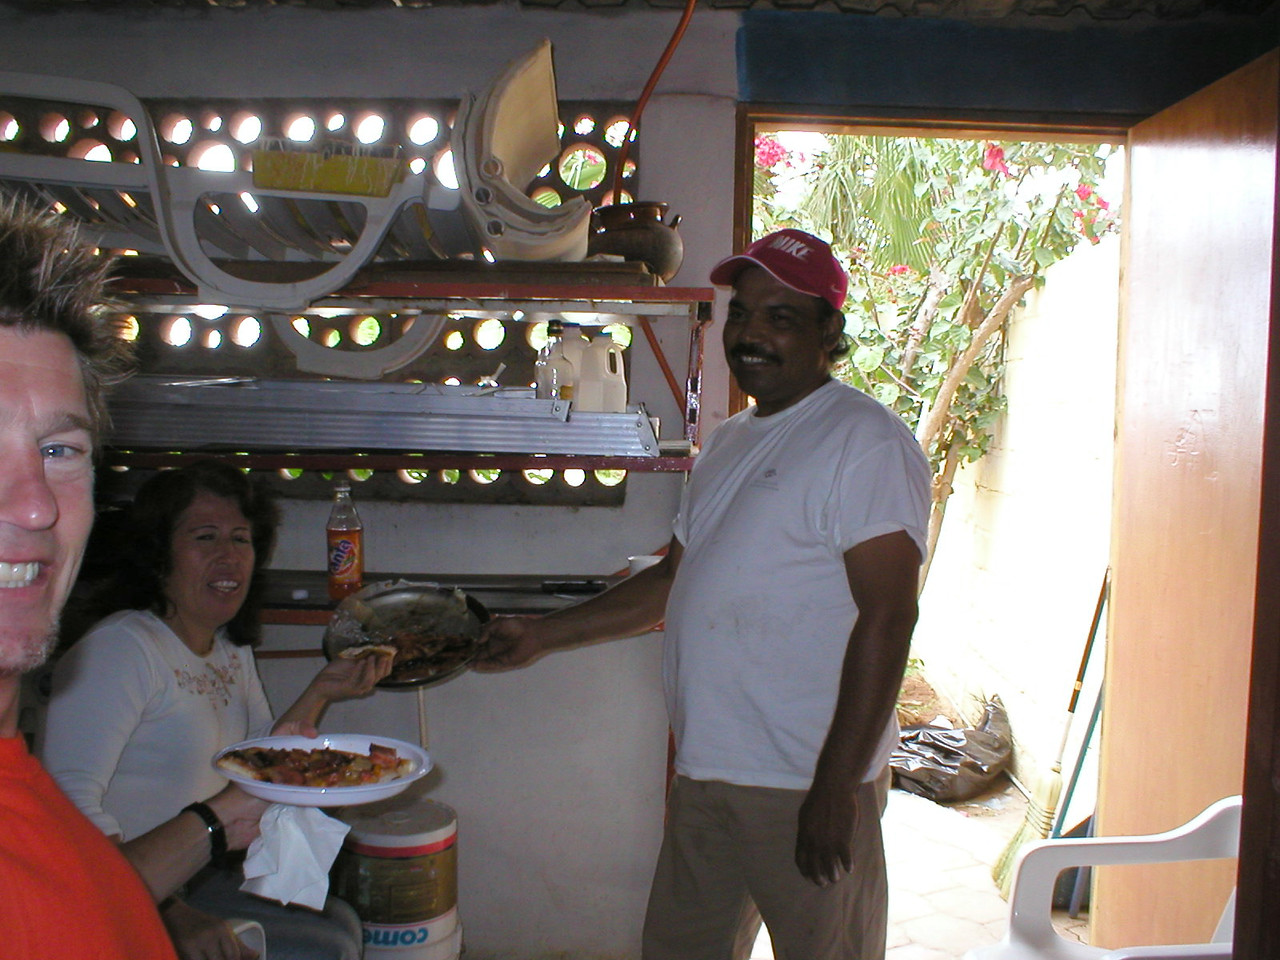 Francisco our grounds keeper brought a homemade pizza for Mari and Us to share, how nice!